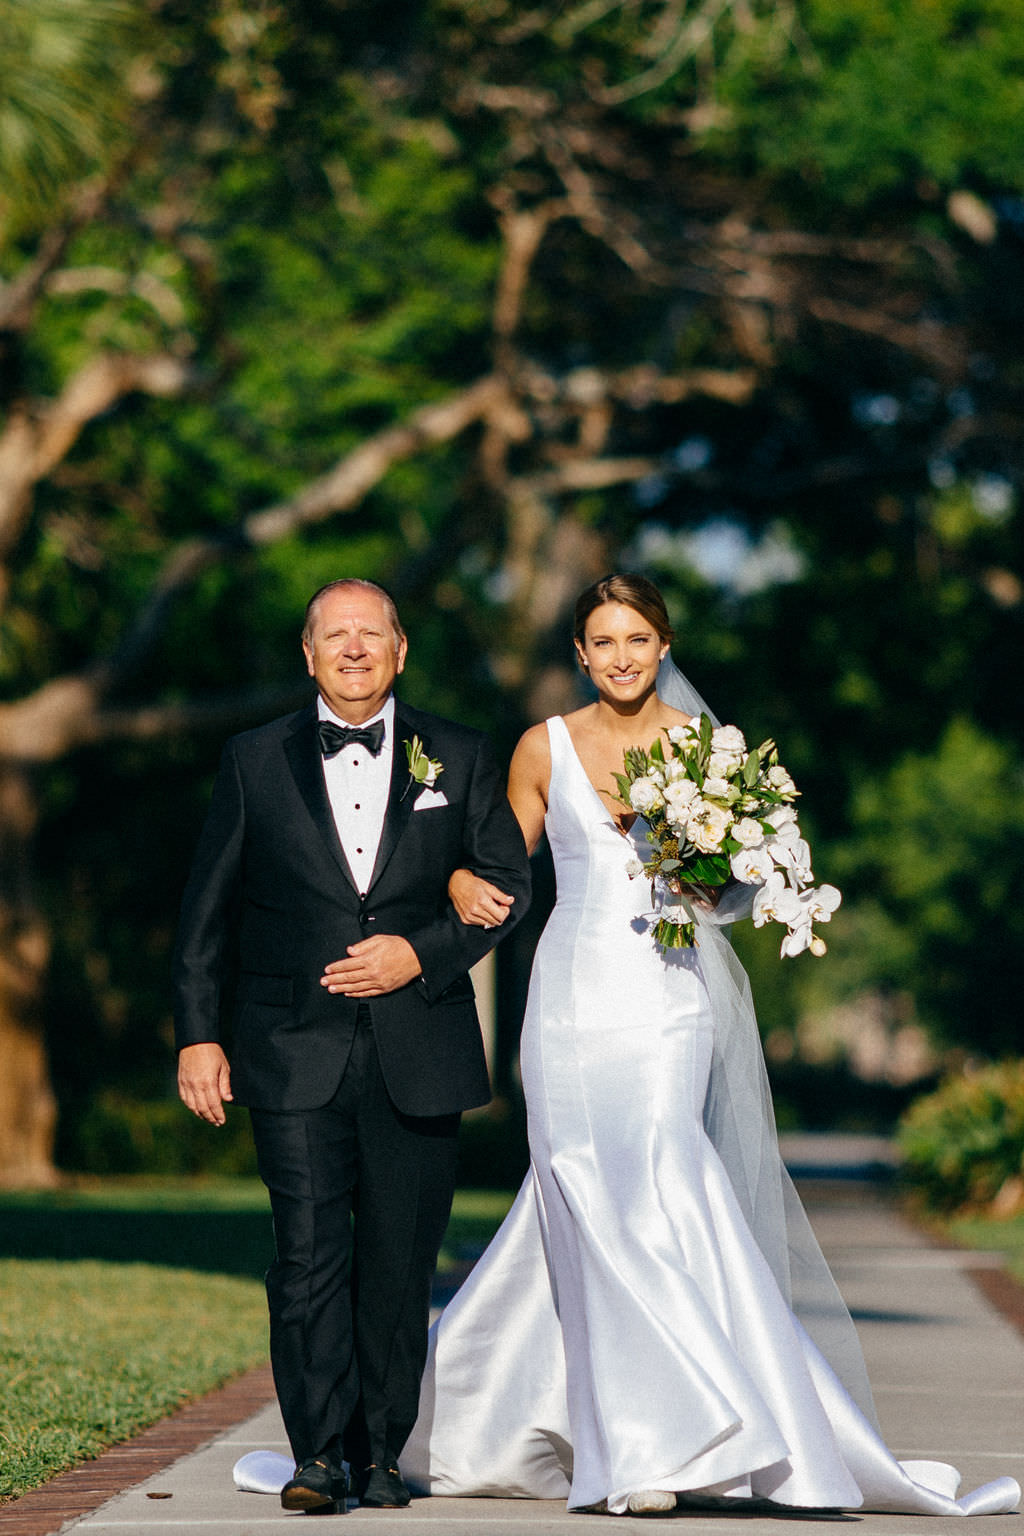 Bride in Classic Silhouette V Neckline Wedding Dress Holding White Orchids and Greenery Floral Bouquet Walking Down the Wedding Ceremony Aisle with Father   Tampa Bay Wedding Planner NK Productions   Wedding Hair and Makeup Femme Akoi Beauty Studio